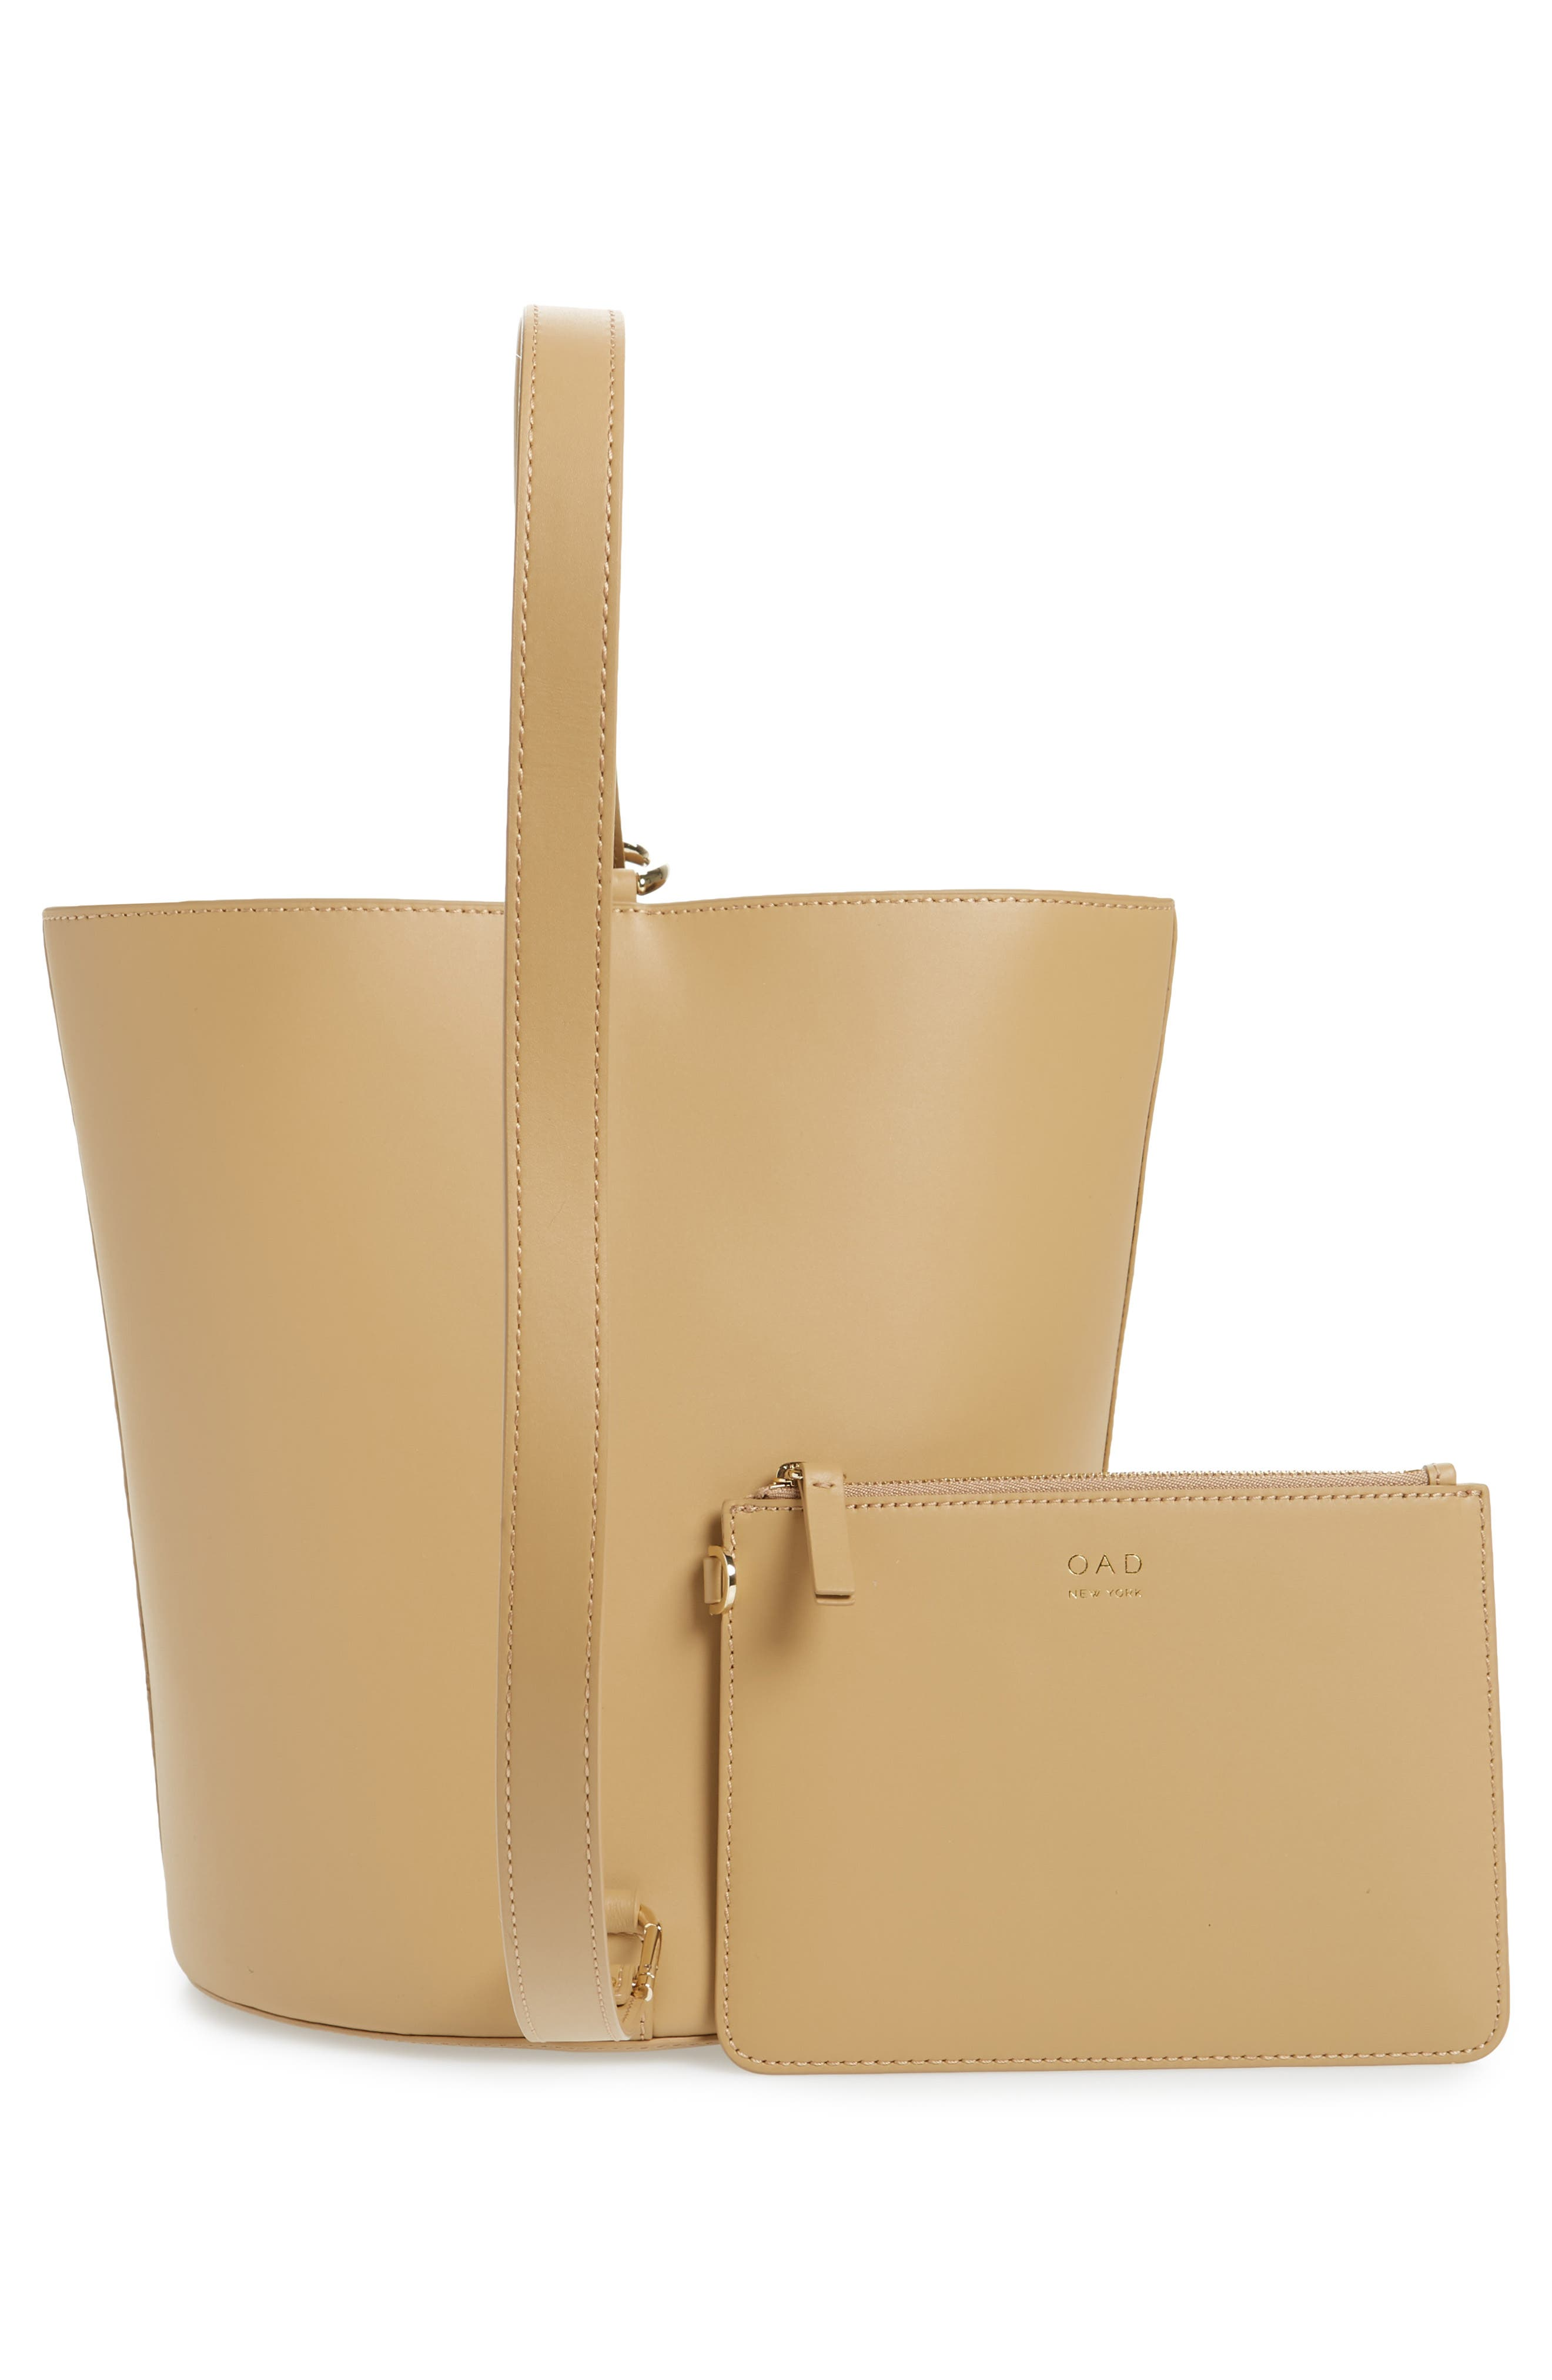 OAD NEW YORK, Dome Leather Bucket Bag, Alternate thumbnail 5, color, 250